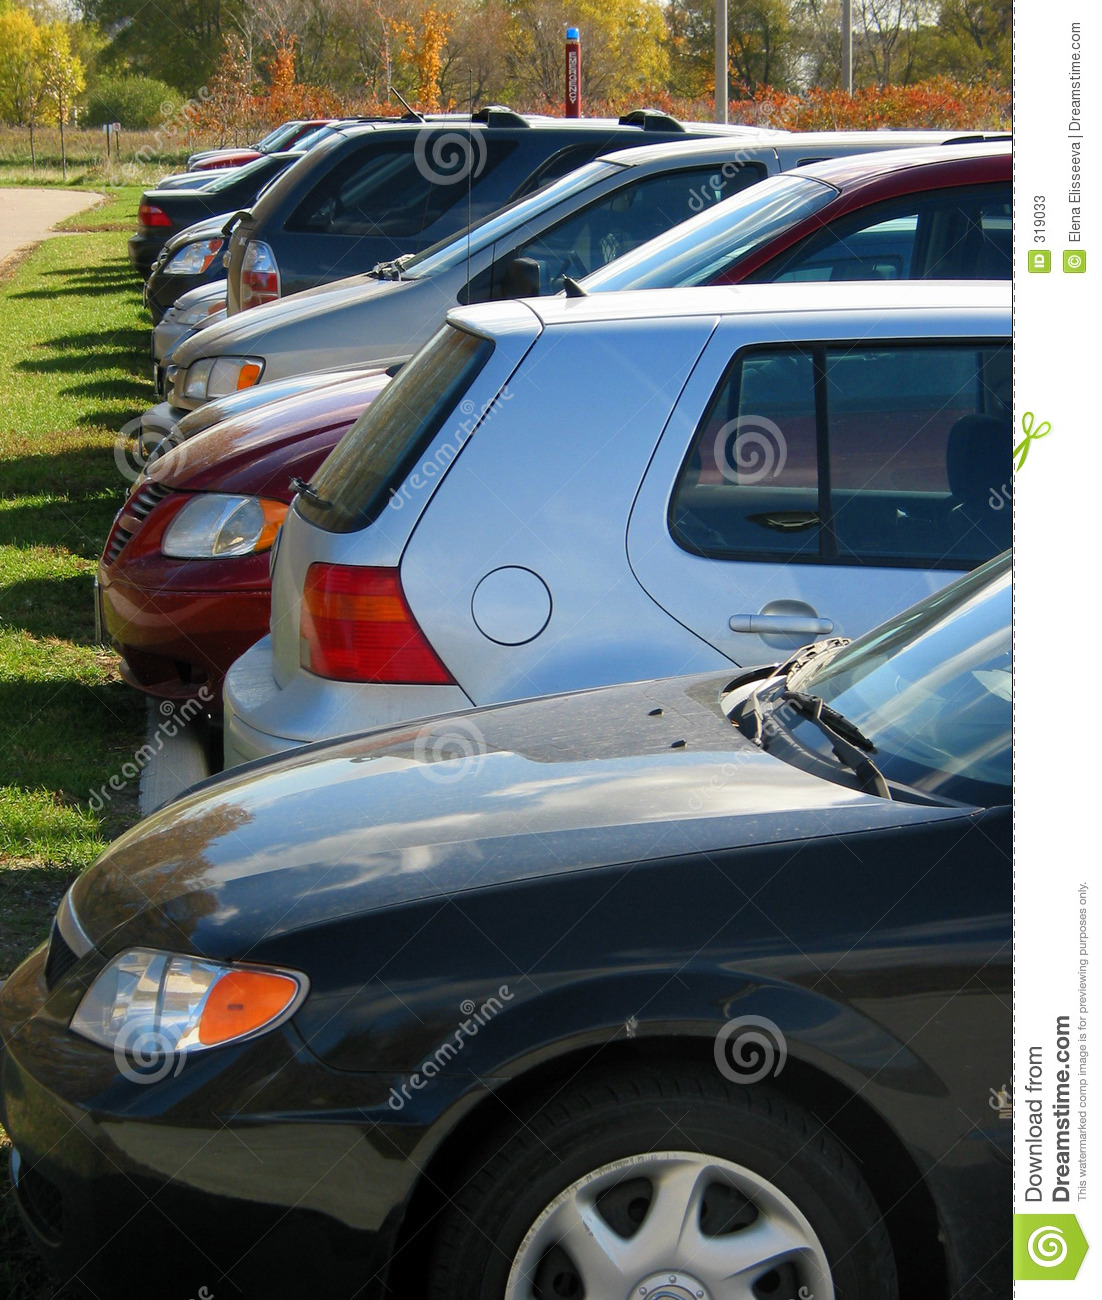 Row of cars in the parking lot